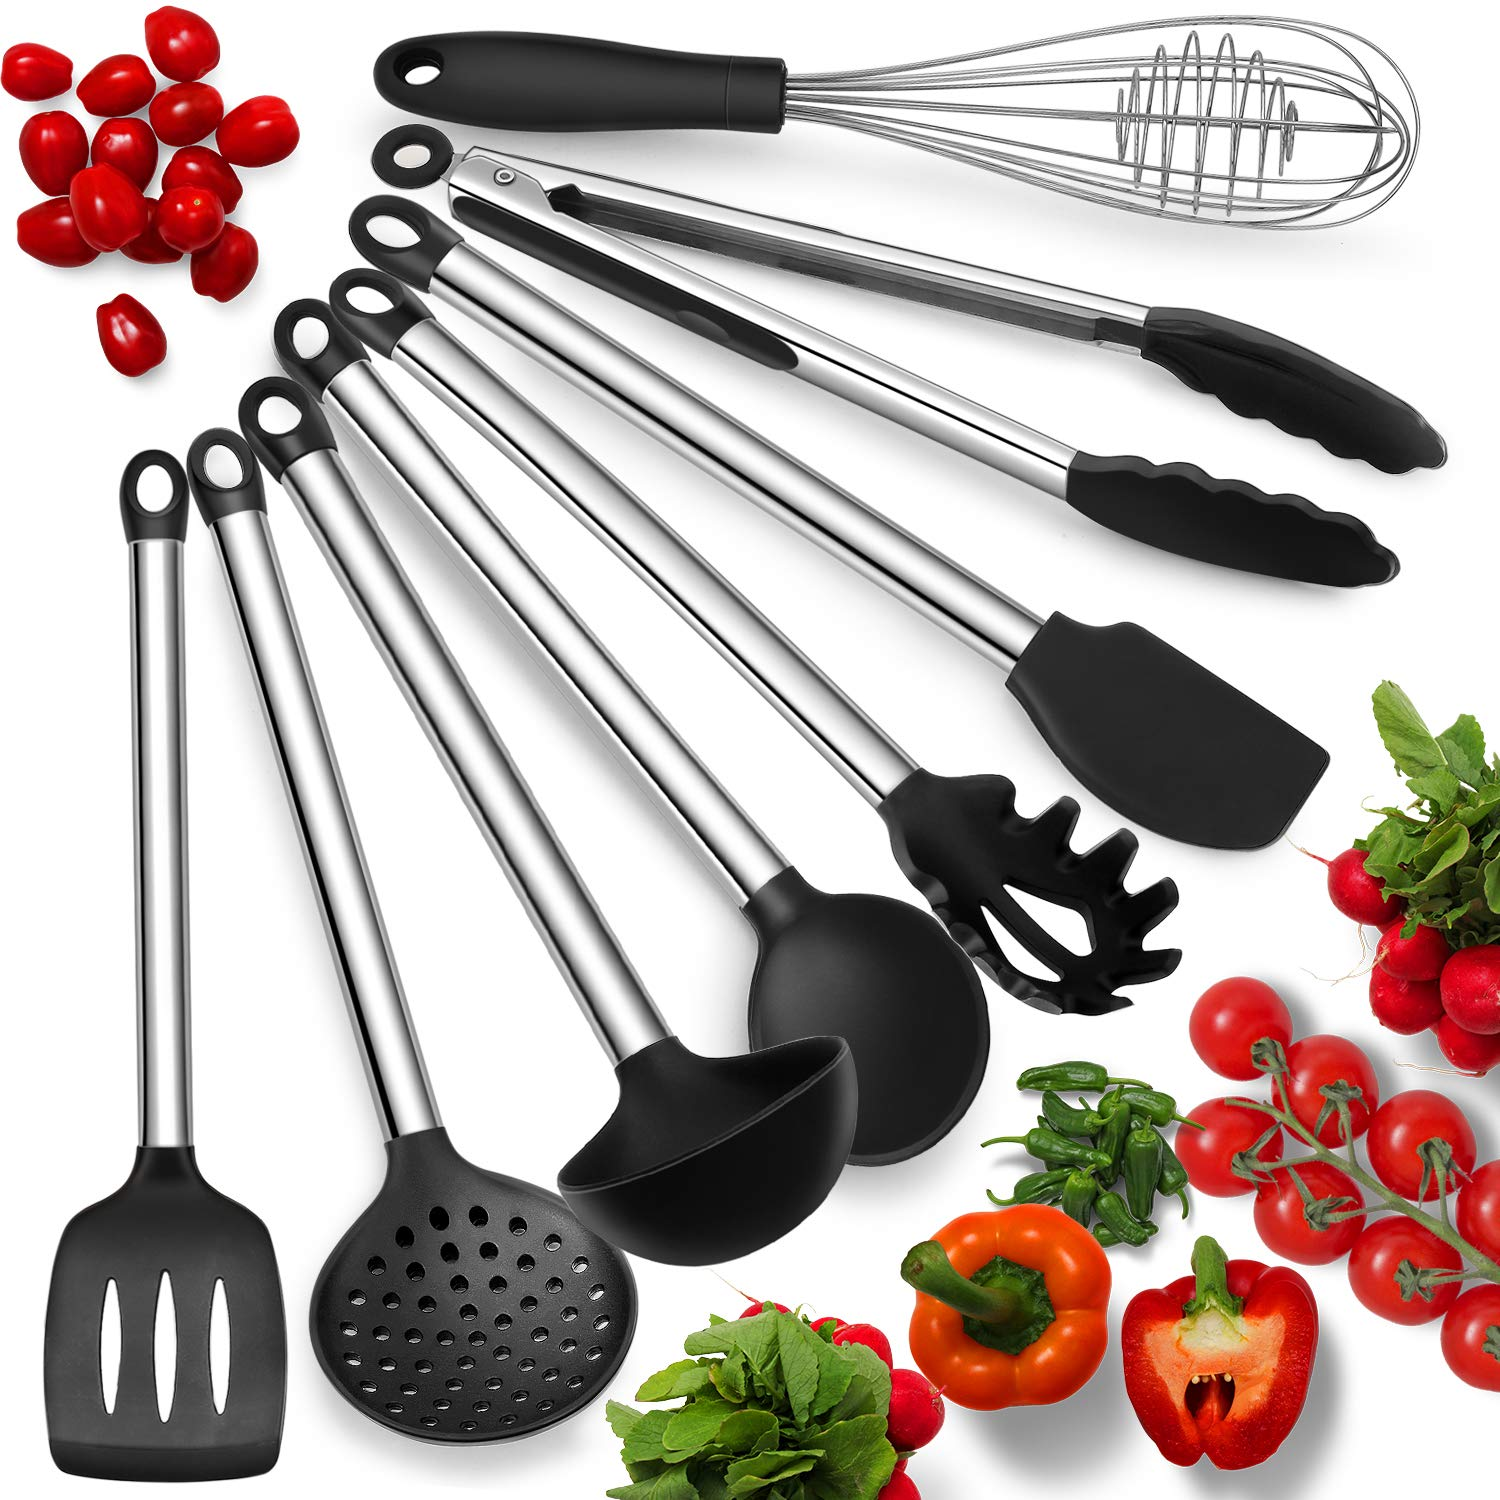 Silicone Kitchen Utensils With Stainless Steel Handles – Set Of 8 Heat Resistant & Nonstick Cooking Tools – Tongs, Serving Spoon, Whisk, Spatula, Ladle, Slotted Turner, Spatula, Handheld Skimmer